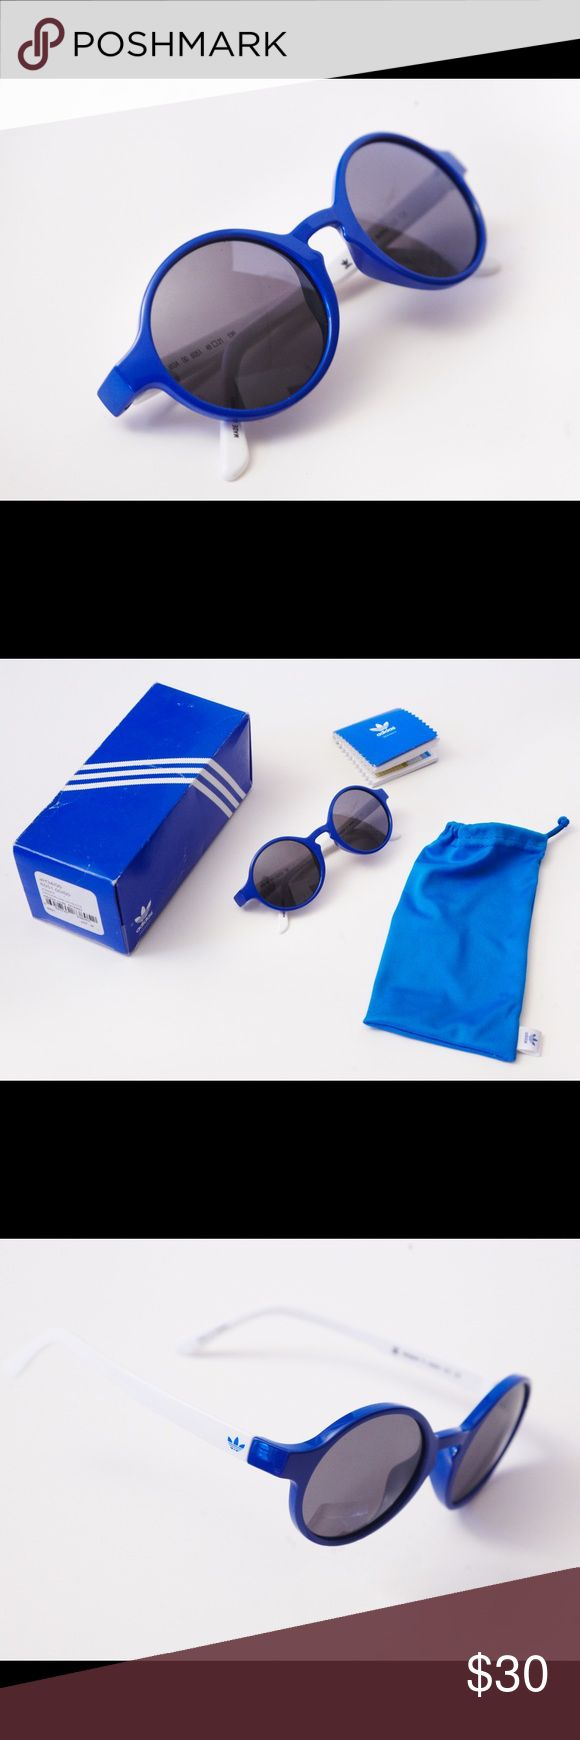 Womens Adidas Sunglasses Plastic Adidas women's round sunglasses   They are designed with a lightweight frame with a shaped nose bridge for comfort. UV protection of at least 100%.  These sunglasses also come with a soft microfibre cloth pouch and a woven pouch to store your sunnies when not in use, the box tags and product Brochure are also included.  adidas branding completes the look. Adidas Accessories Sunglasses